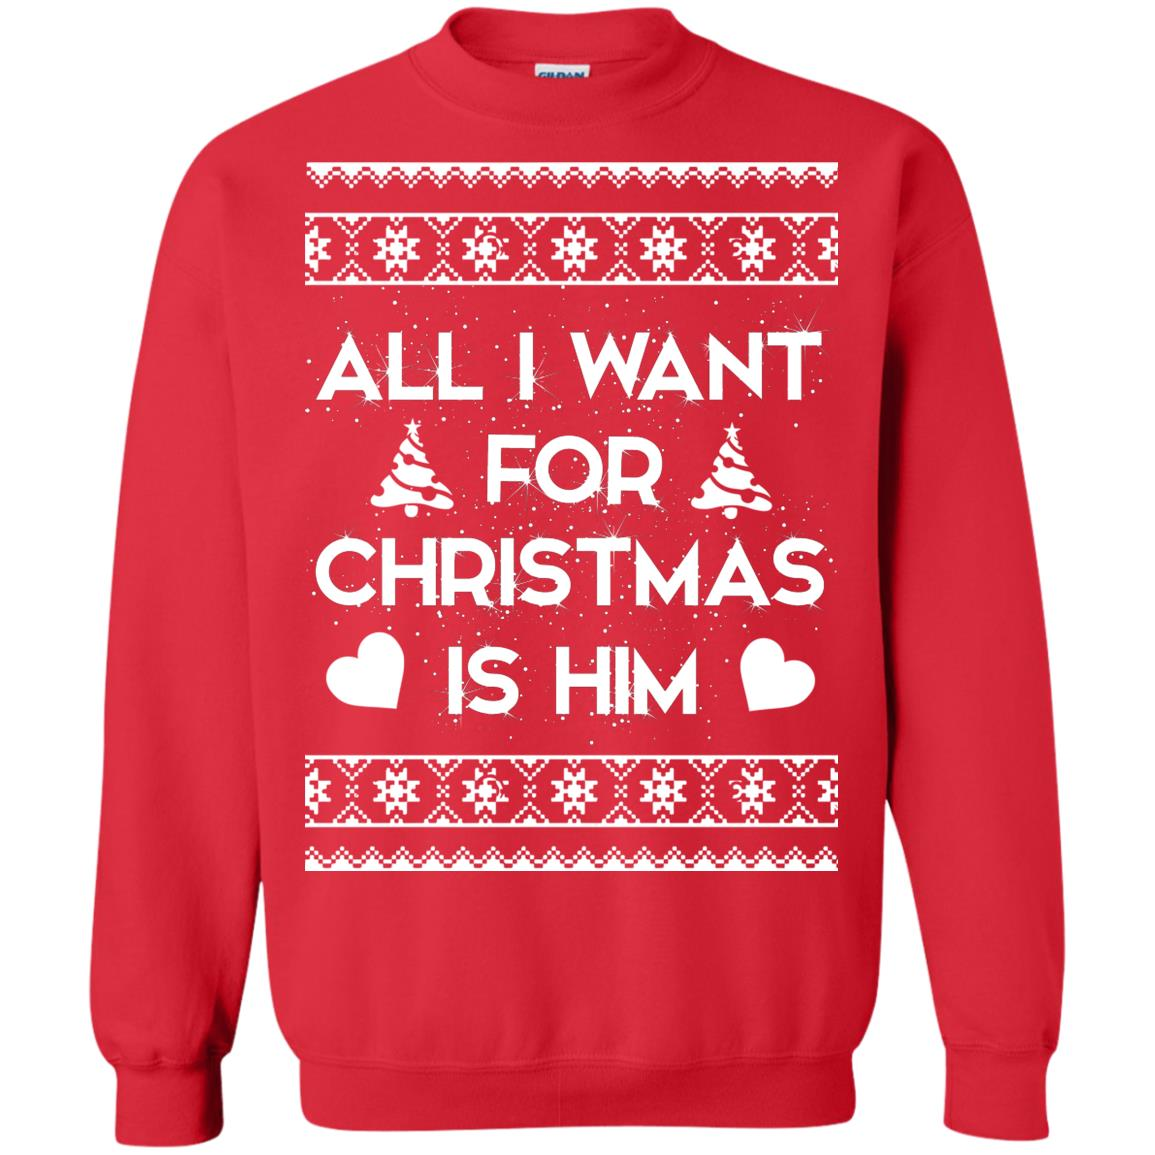 image 2379 - Couple Sweatshirt: All I Want For Christmas Is Him Ugly Sweater, Shirt